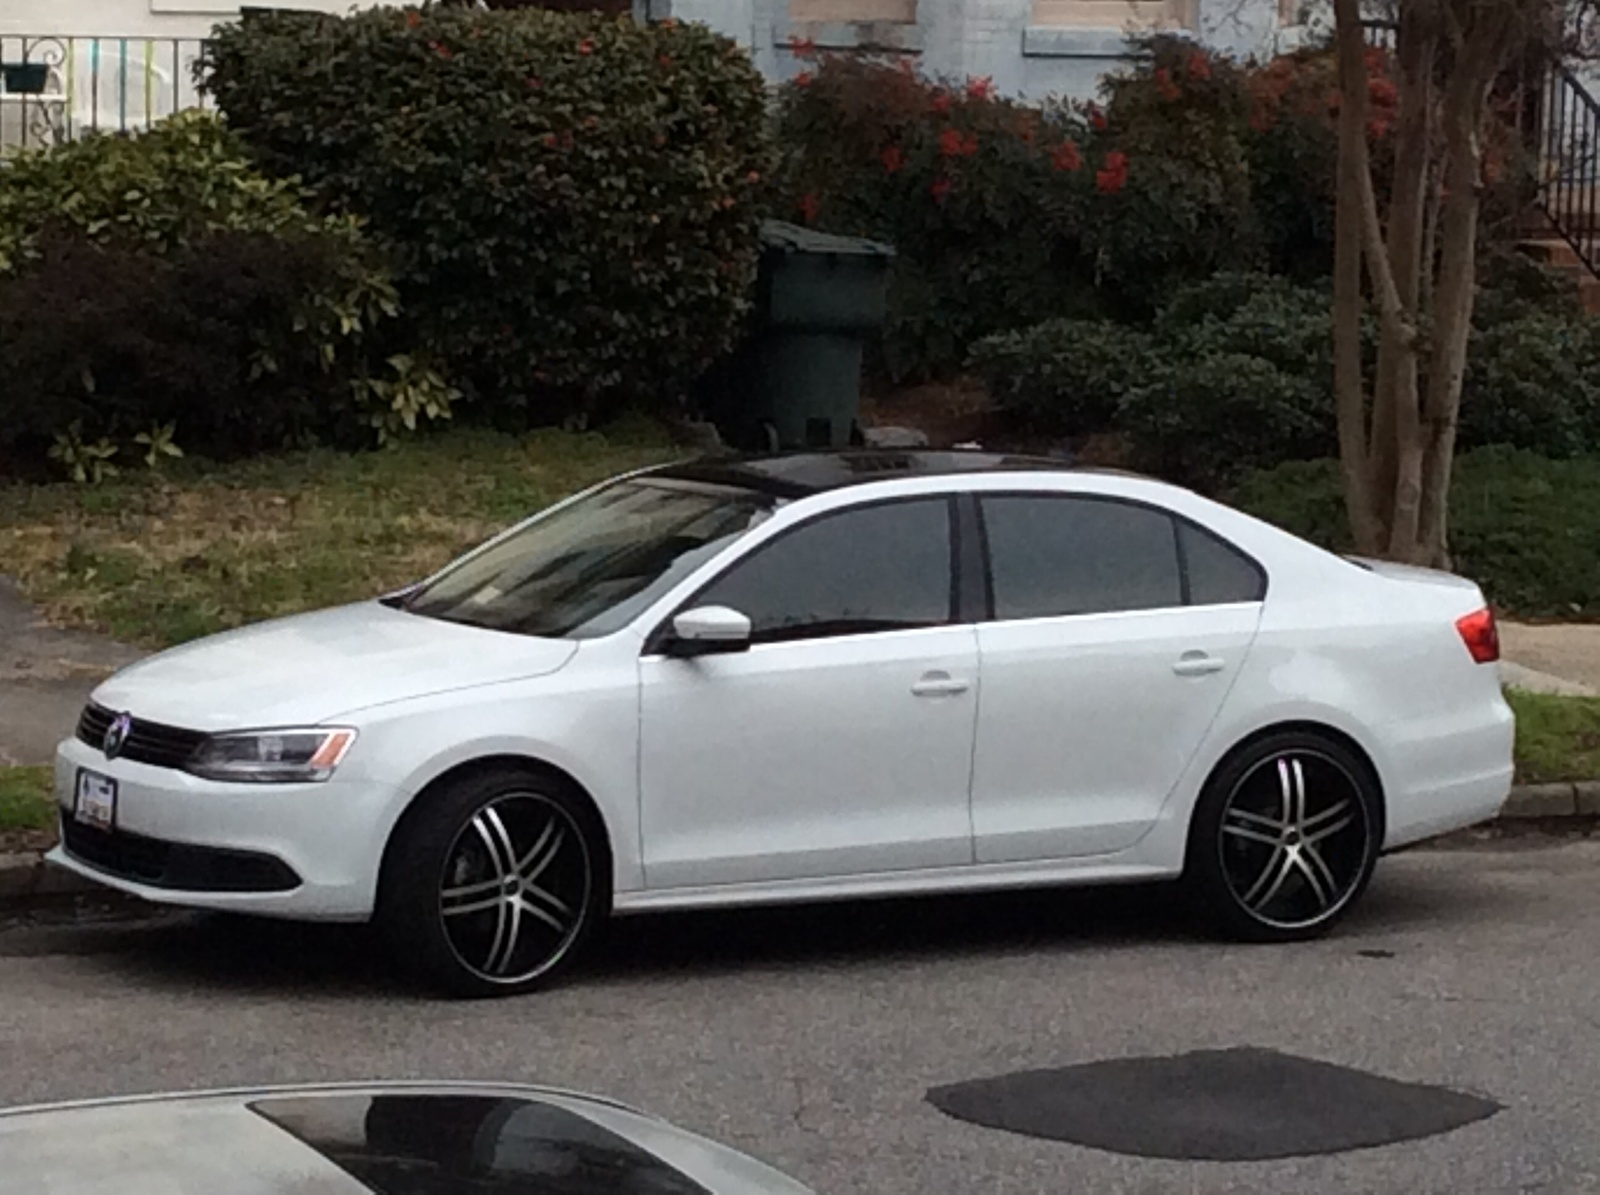 Volkswagen Jetta Questions - 2014 came with 20 should I down grade ...